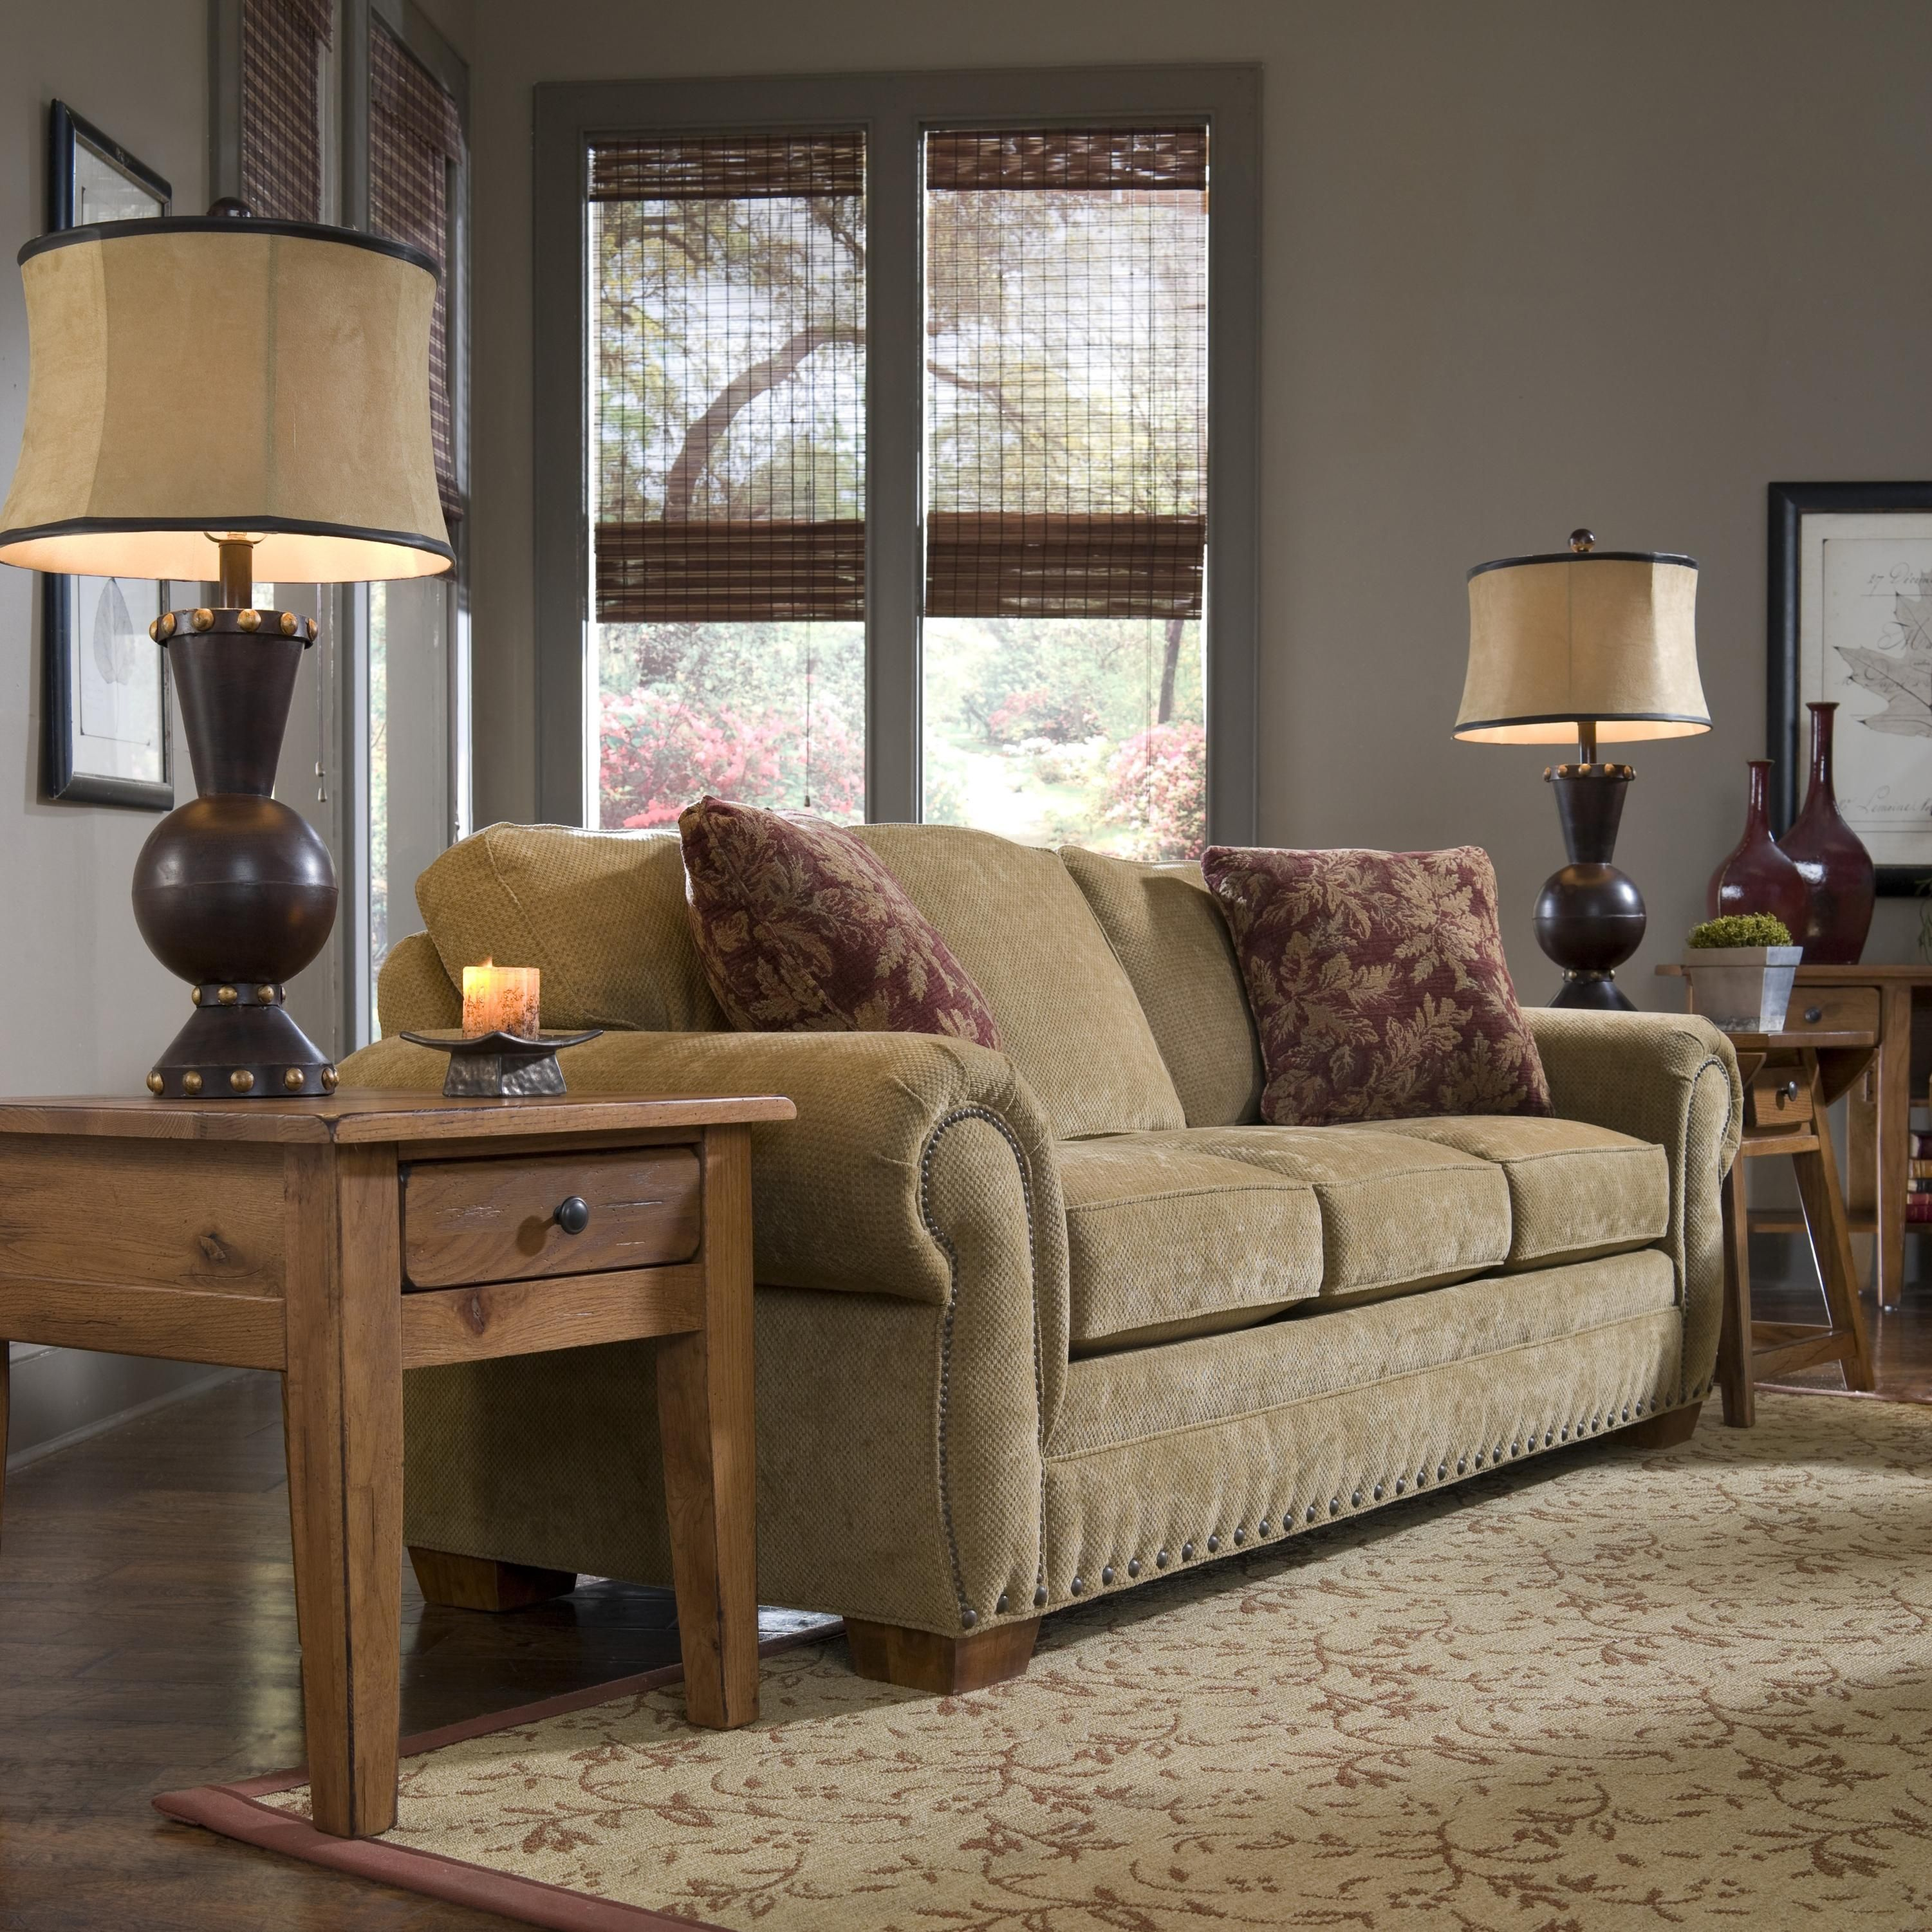 High Quality 5054 Cambridge Casual Style Sofa With Nail Head Trim By Broyhill Furniture    Becker Furniture World